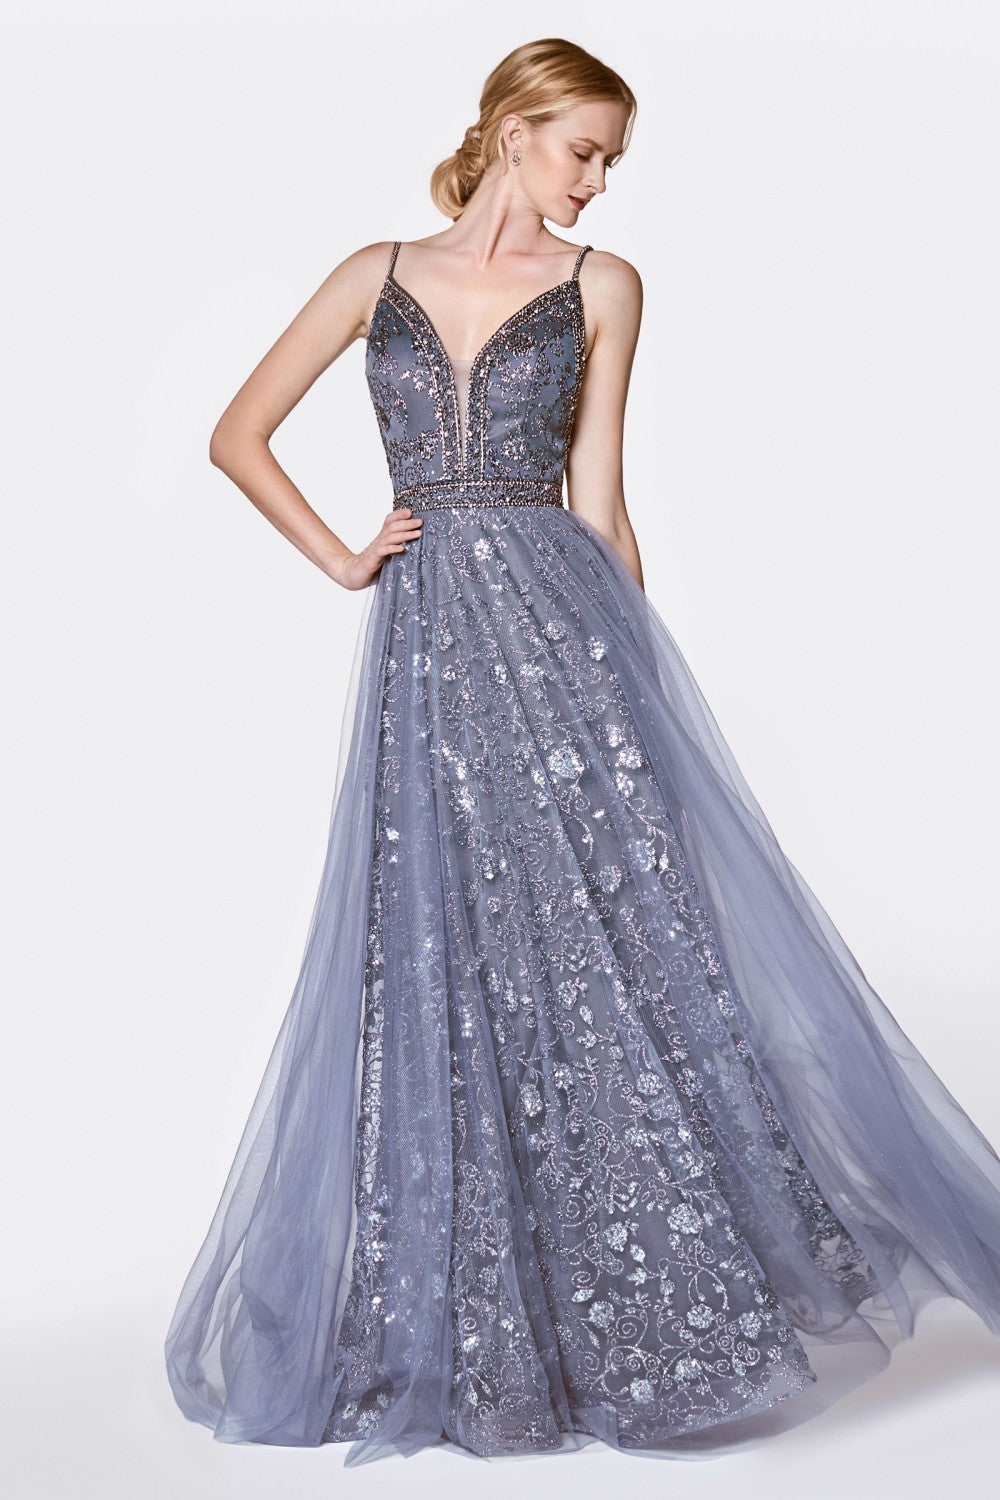 A-Line Glitter Gown With Deep Plunging Neckline And Open Back